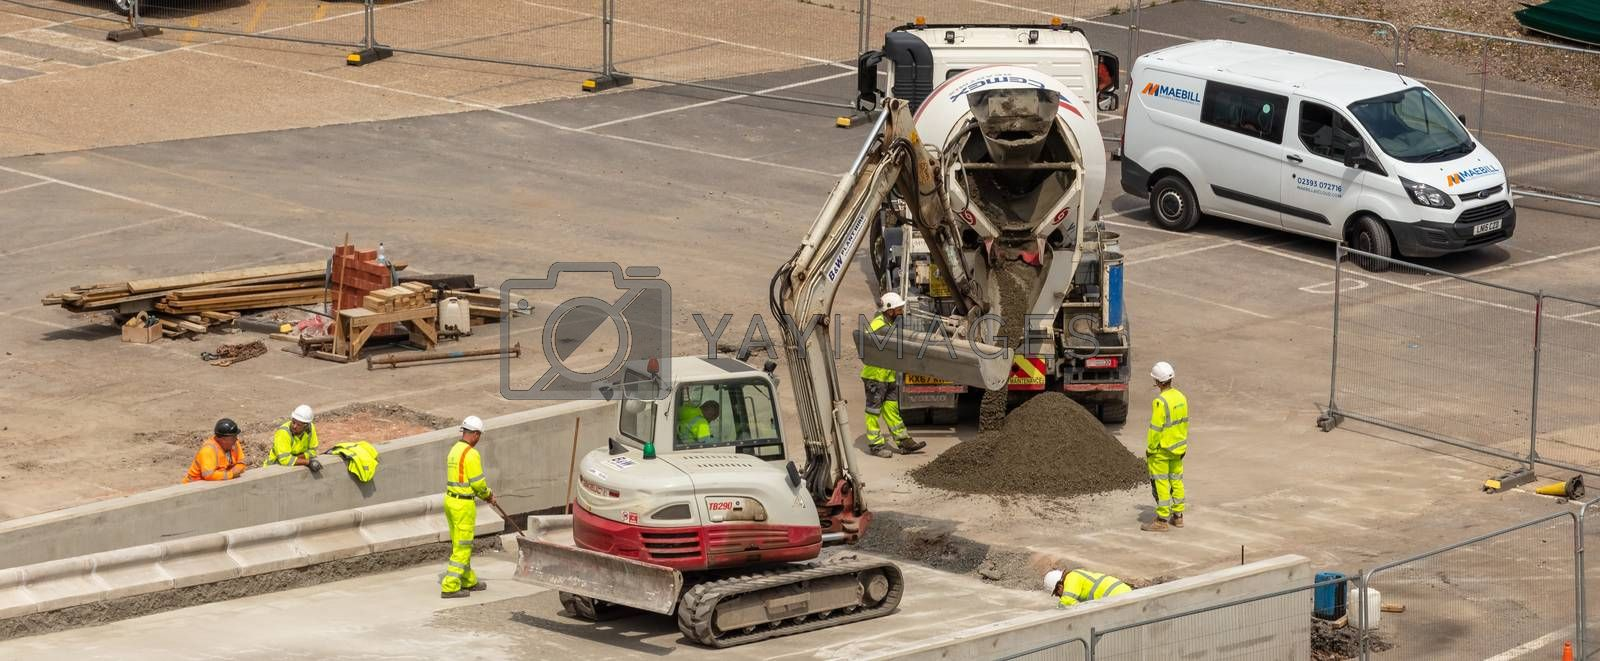 Southampton port, England, UK - June 08, 2020: Construction workers wearing light green safety clothing and hard hats on site. Excavator, concrete mixer. Construction concept.